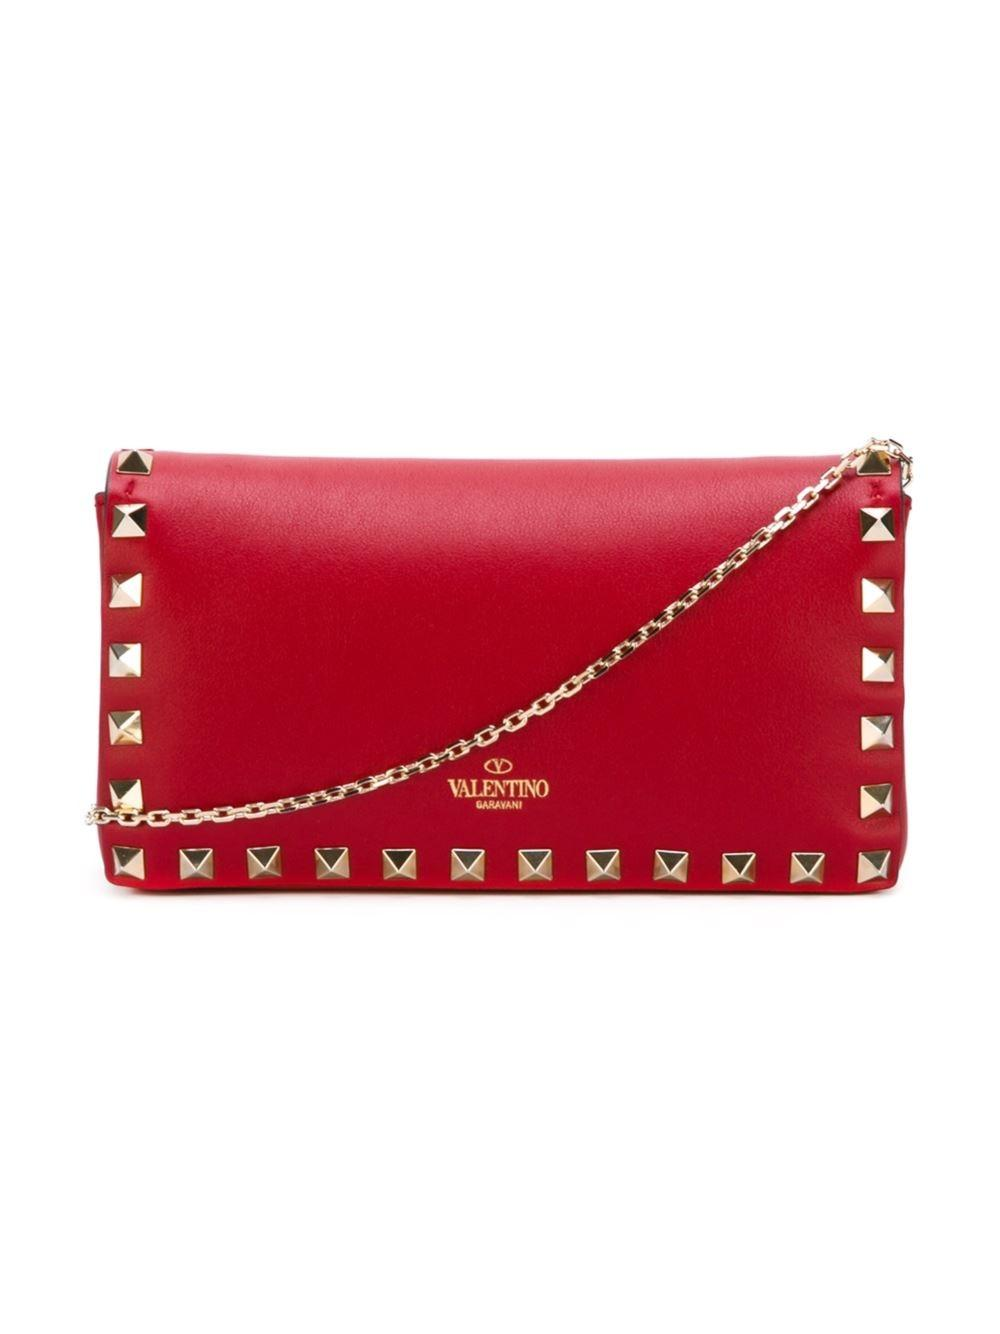 Valentino Bag Red Mini Rock Stud Clutch Cross Body Wallet On Chain New P1ZxCw0AZM